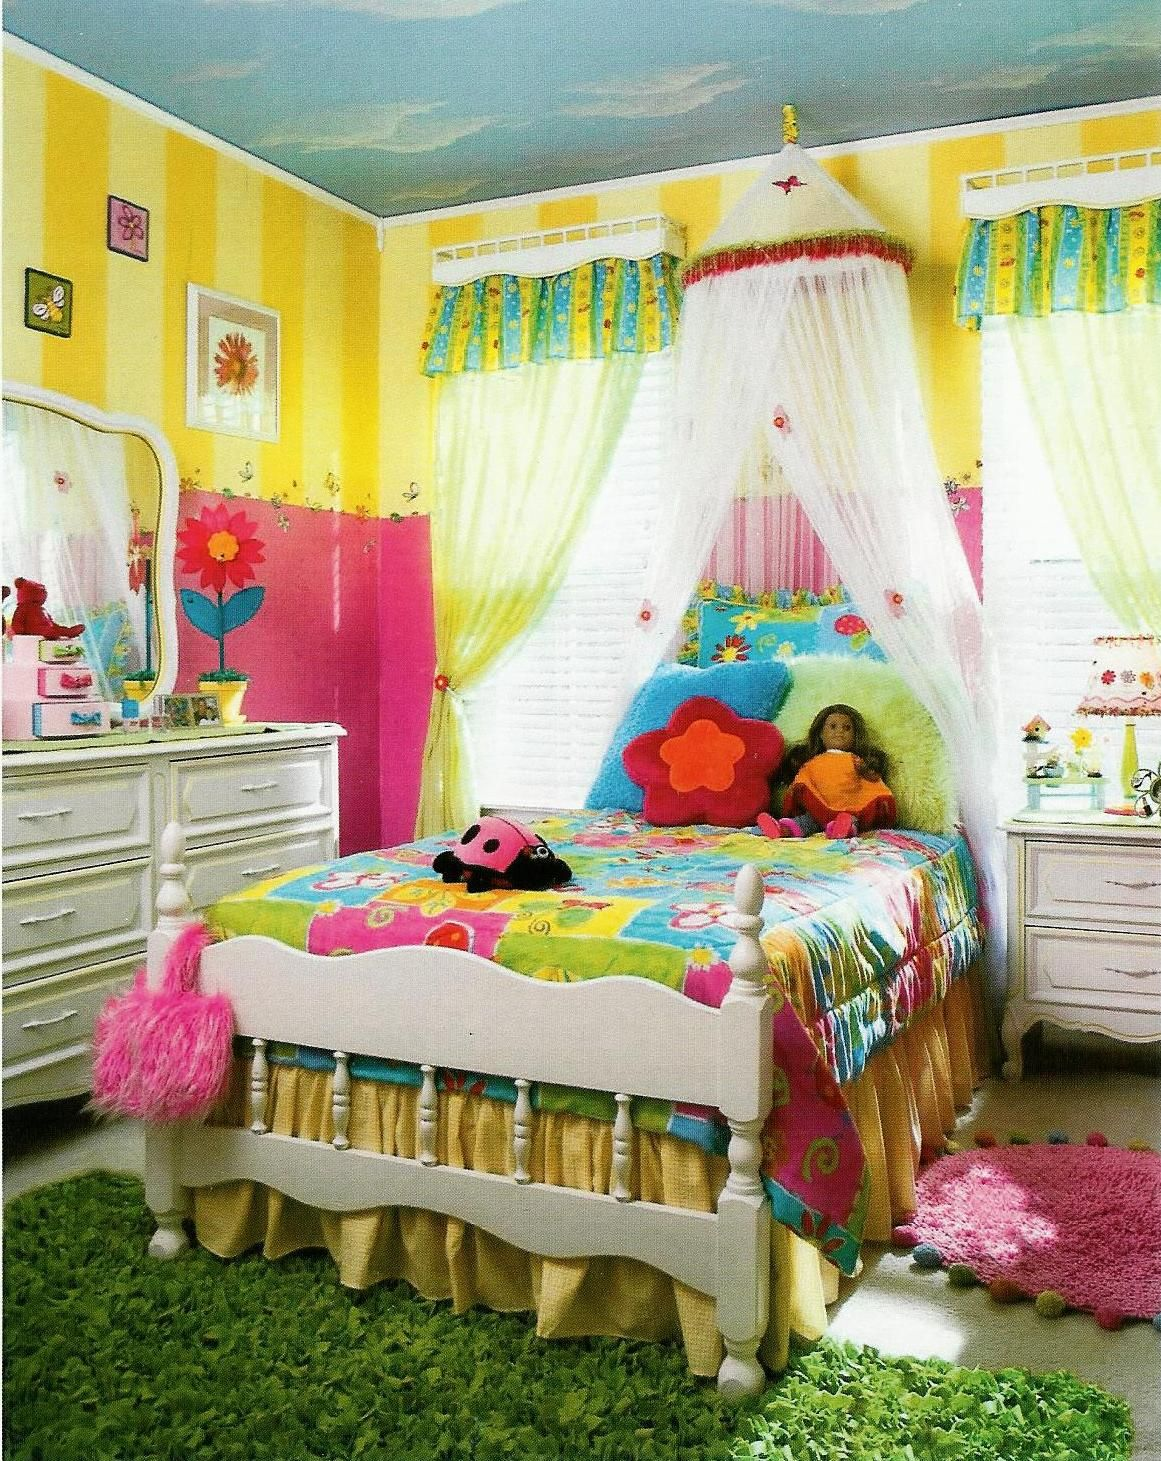 17 Best images about Kids Room on Pinterest   Bedroom ideas  Kids boys and Bedroom  designs. 17 Best images about Kids Room on Pinterest   Bedroom ideas  Kids